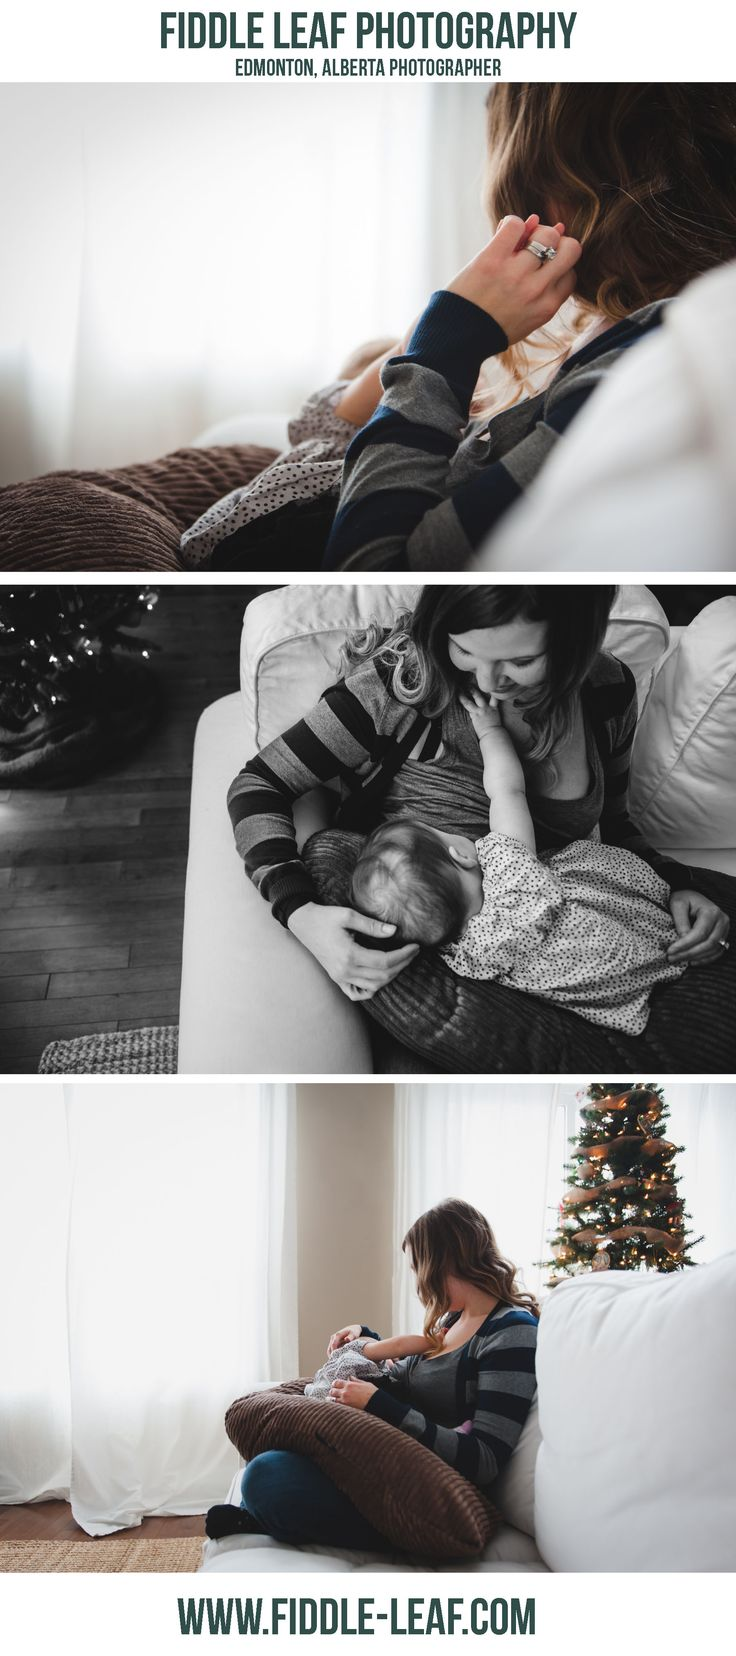 Beautiful breastfeeding photography. Edmonton photographer. Fiddle Leaf Photography